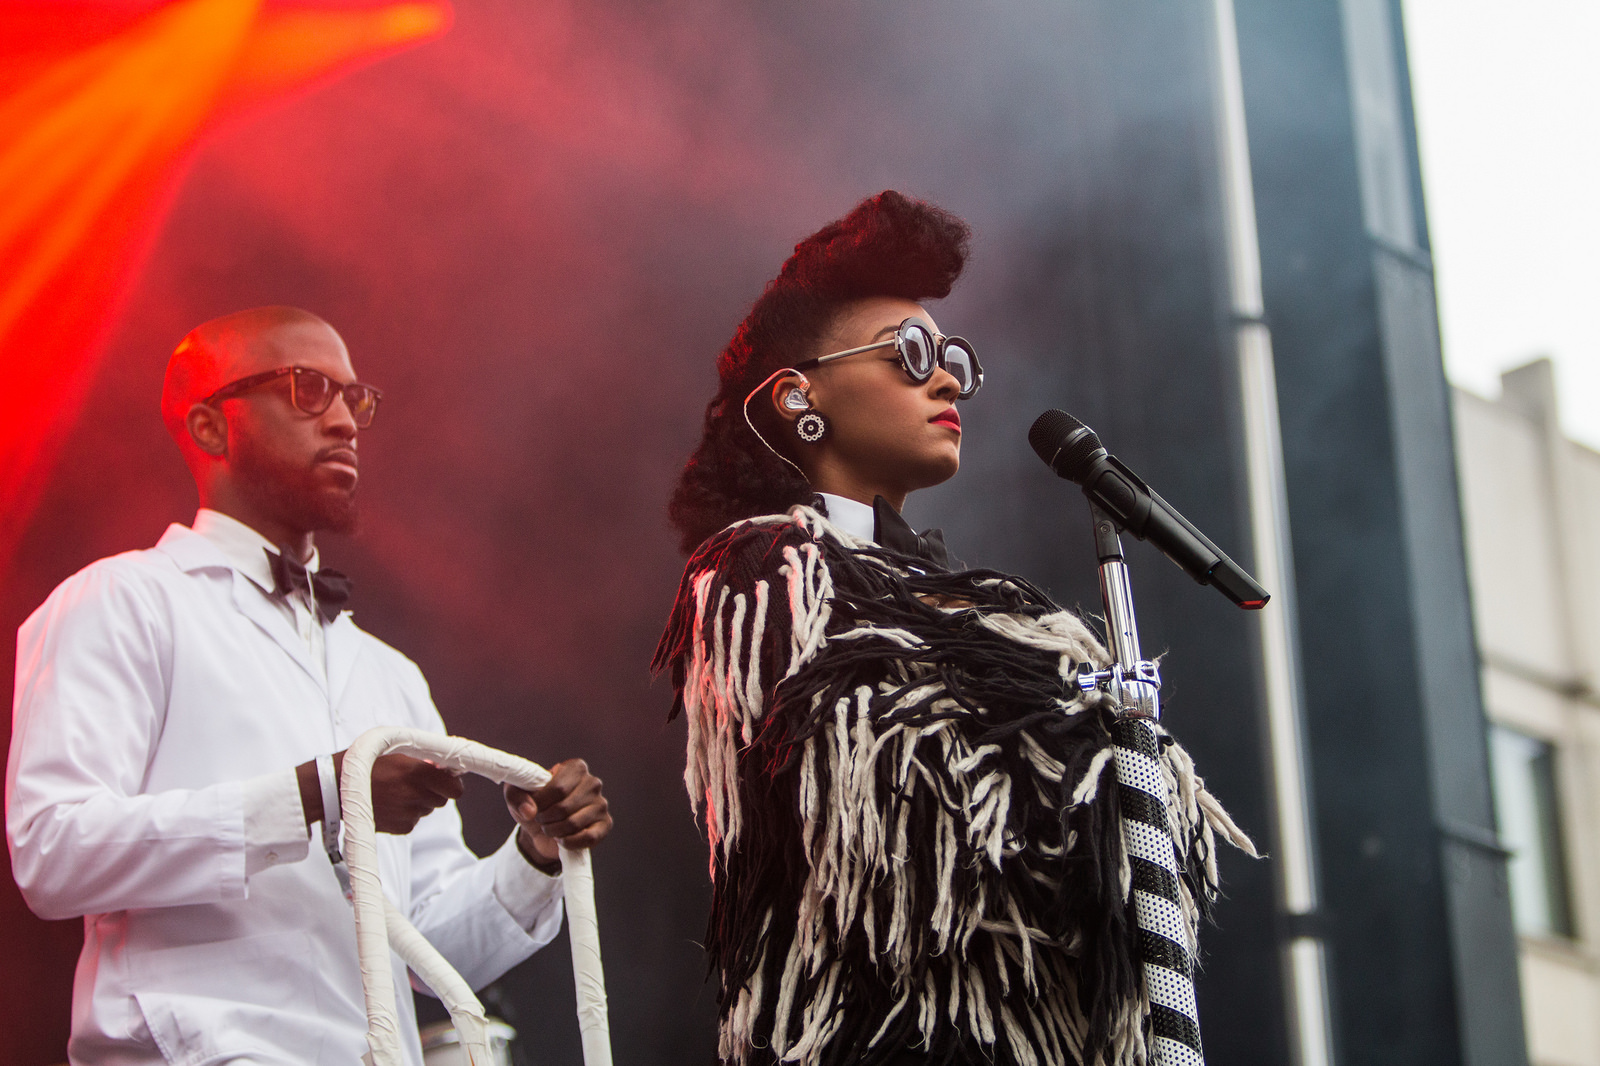 What We Can Learn About Fashion From These Style Icons - Janelle Monae